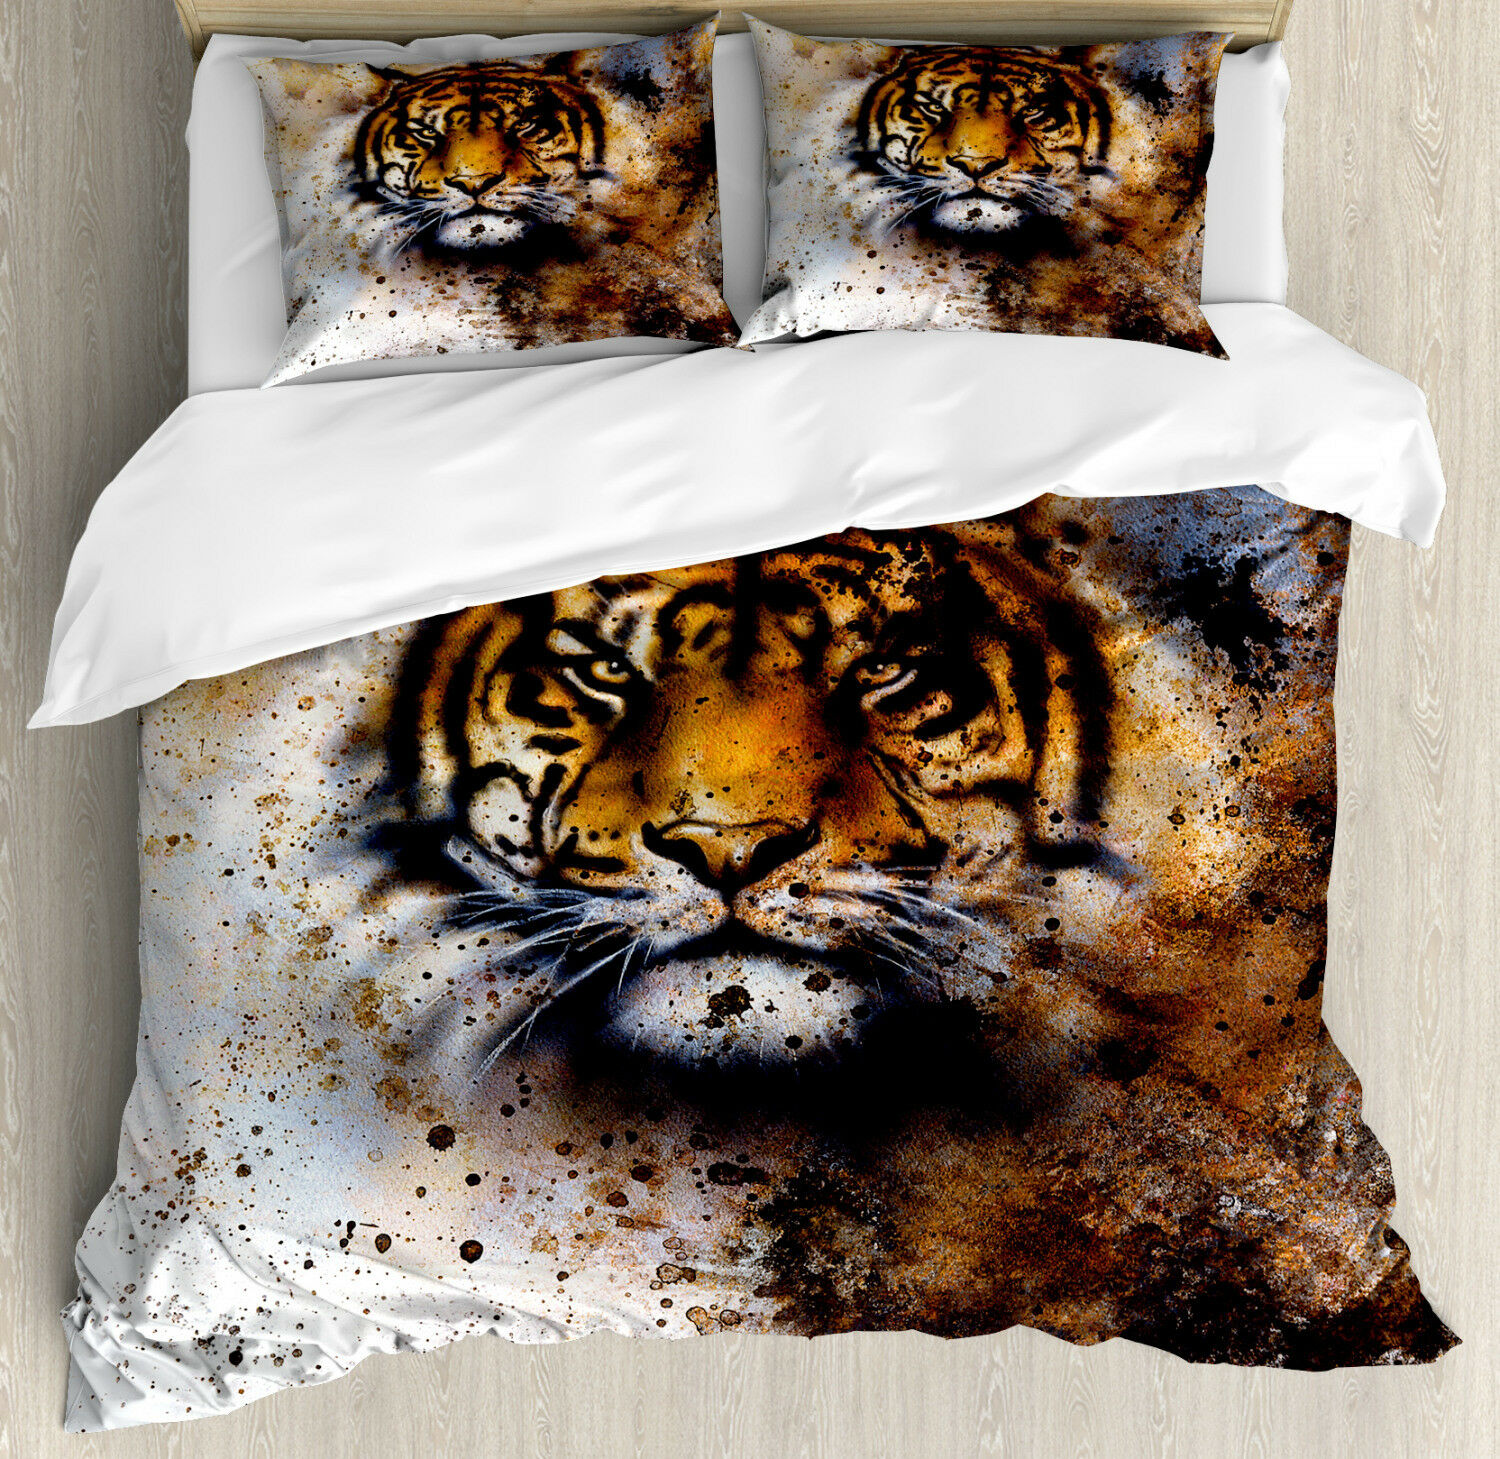 Tiger Duvet Cover Set with Pillow Shams Wild Beast Angry Prossoator Print